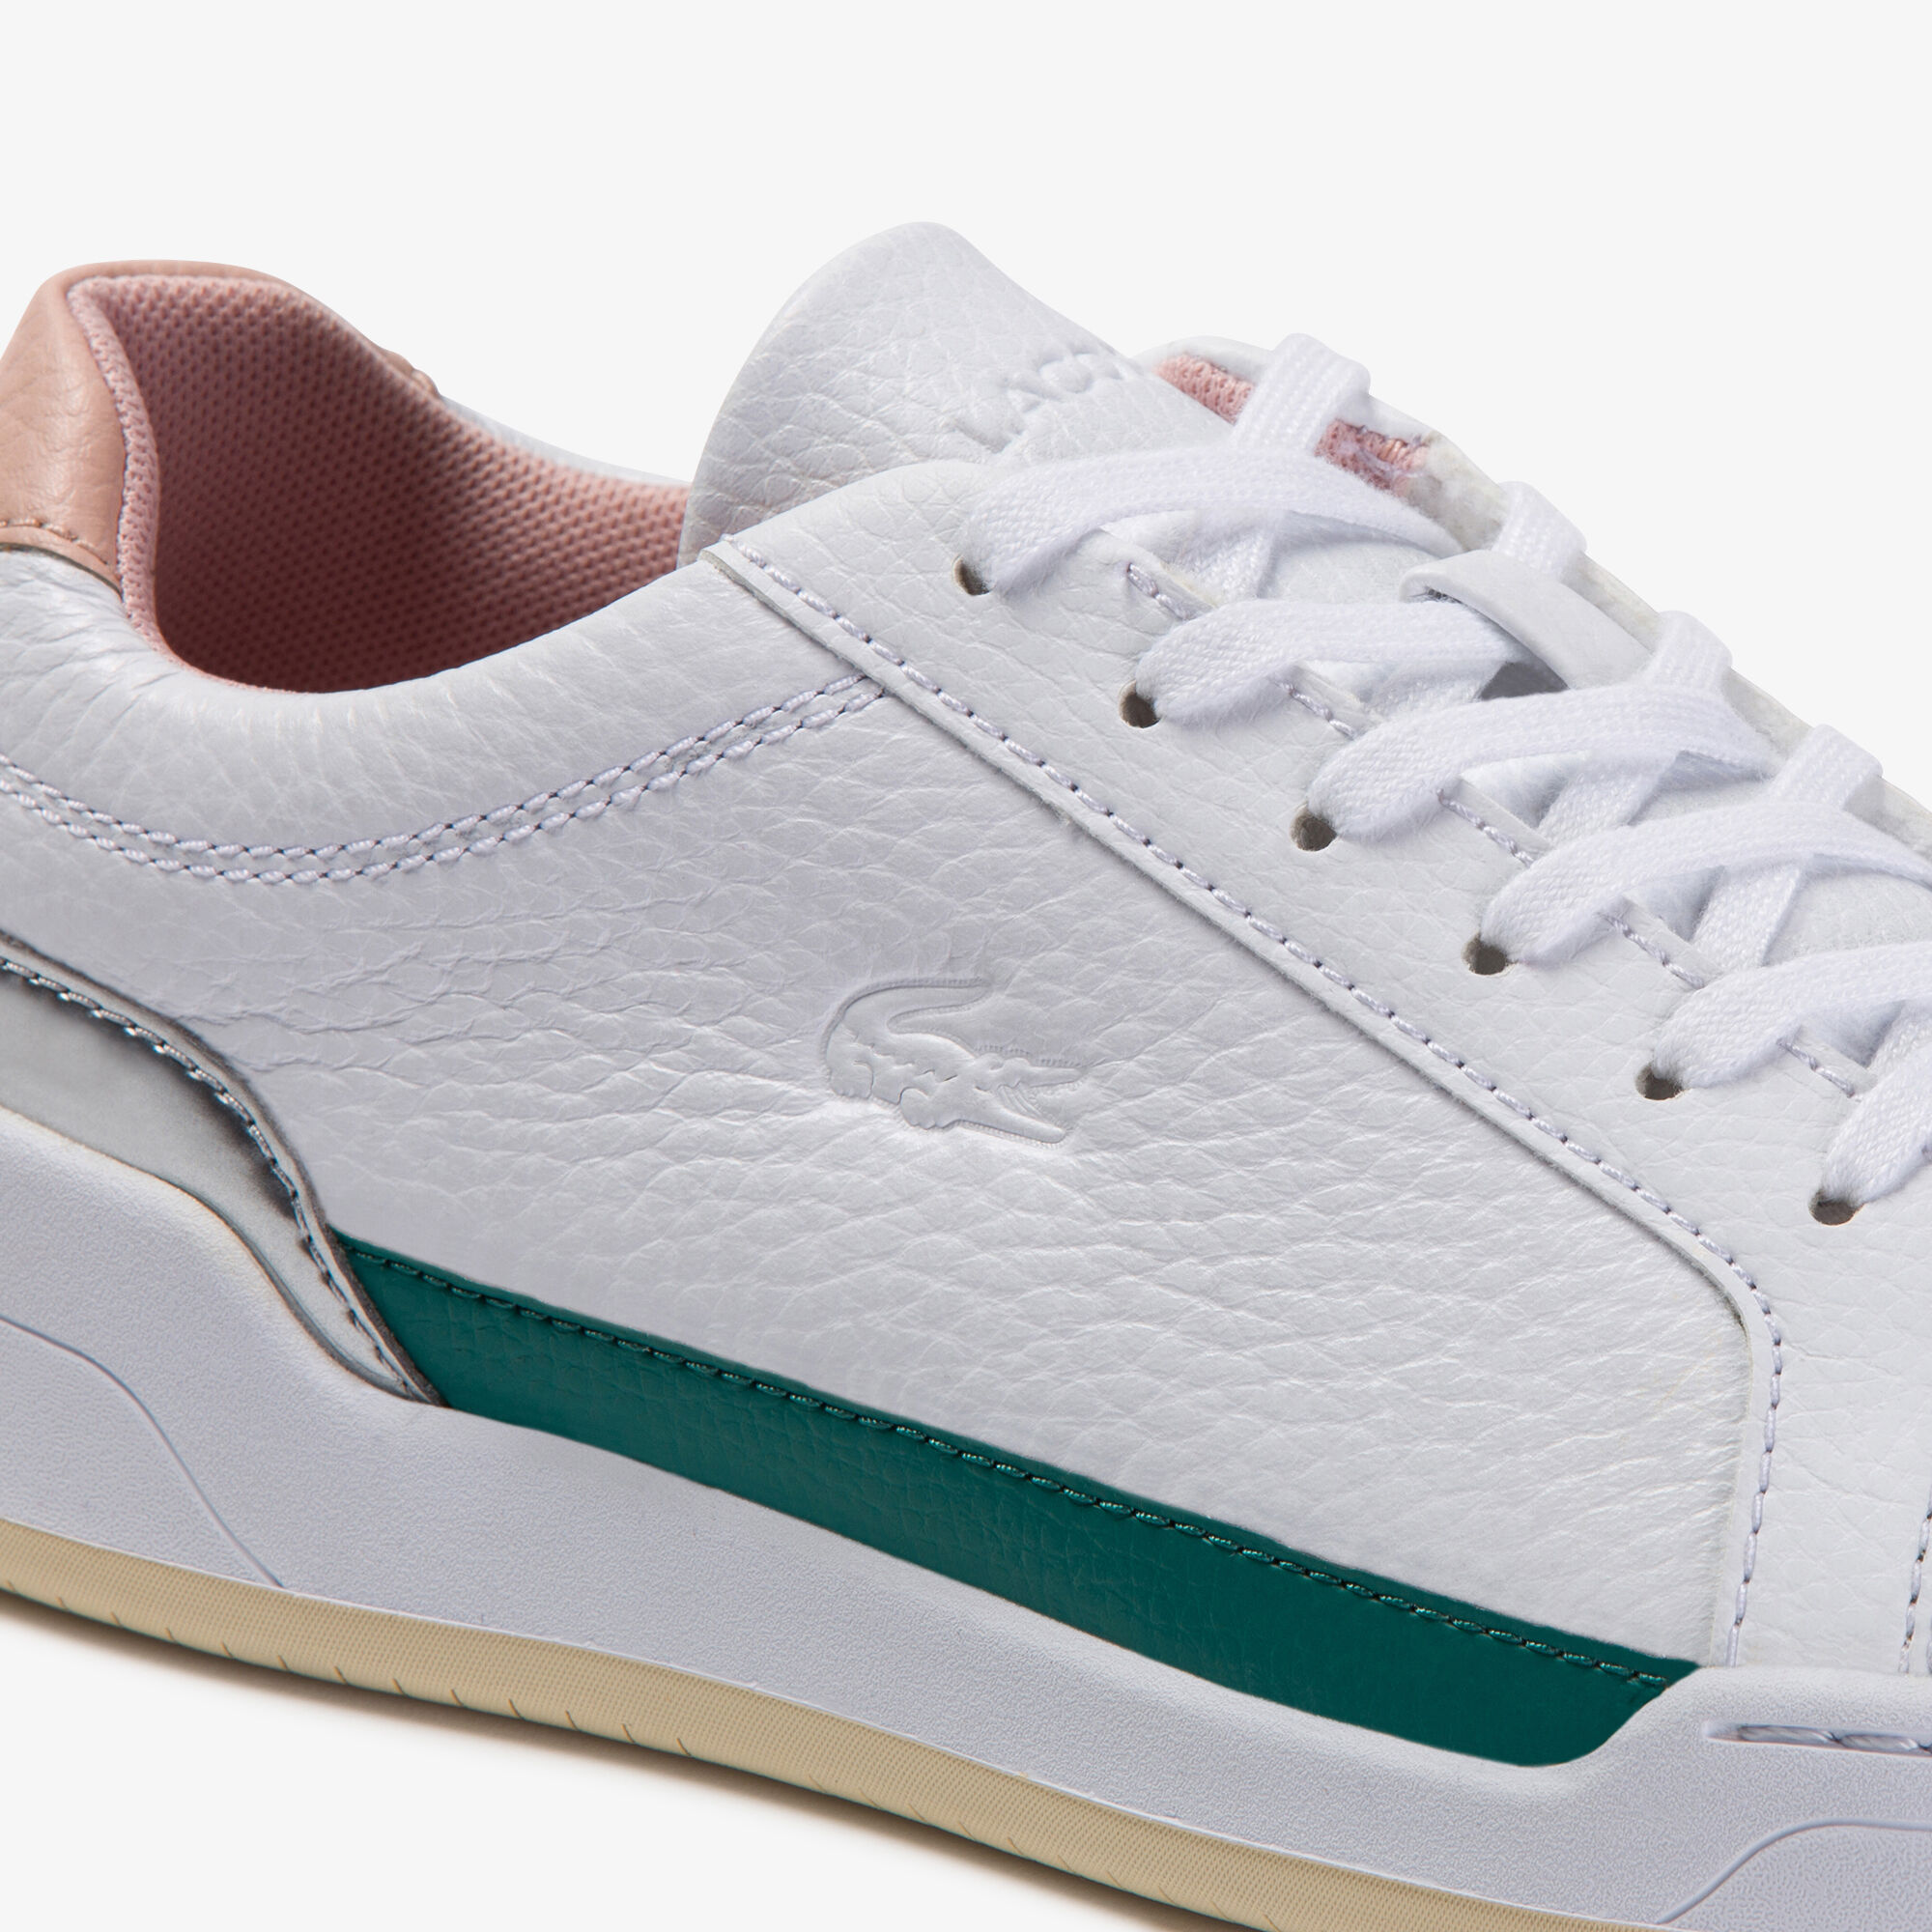 Women's Challenge Tumbled Leather Sneakers